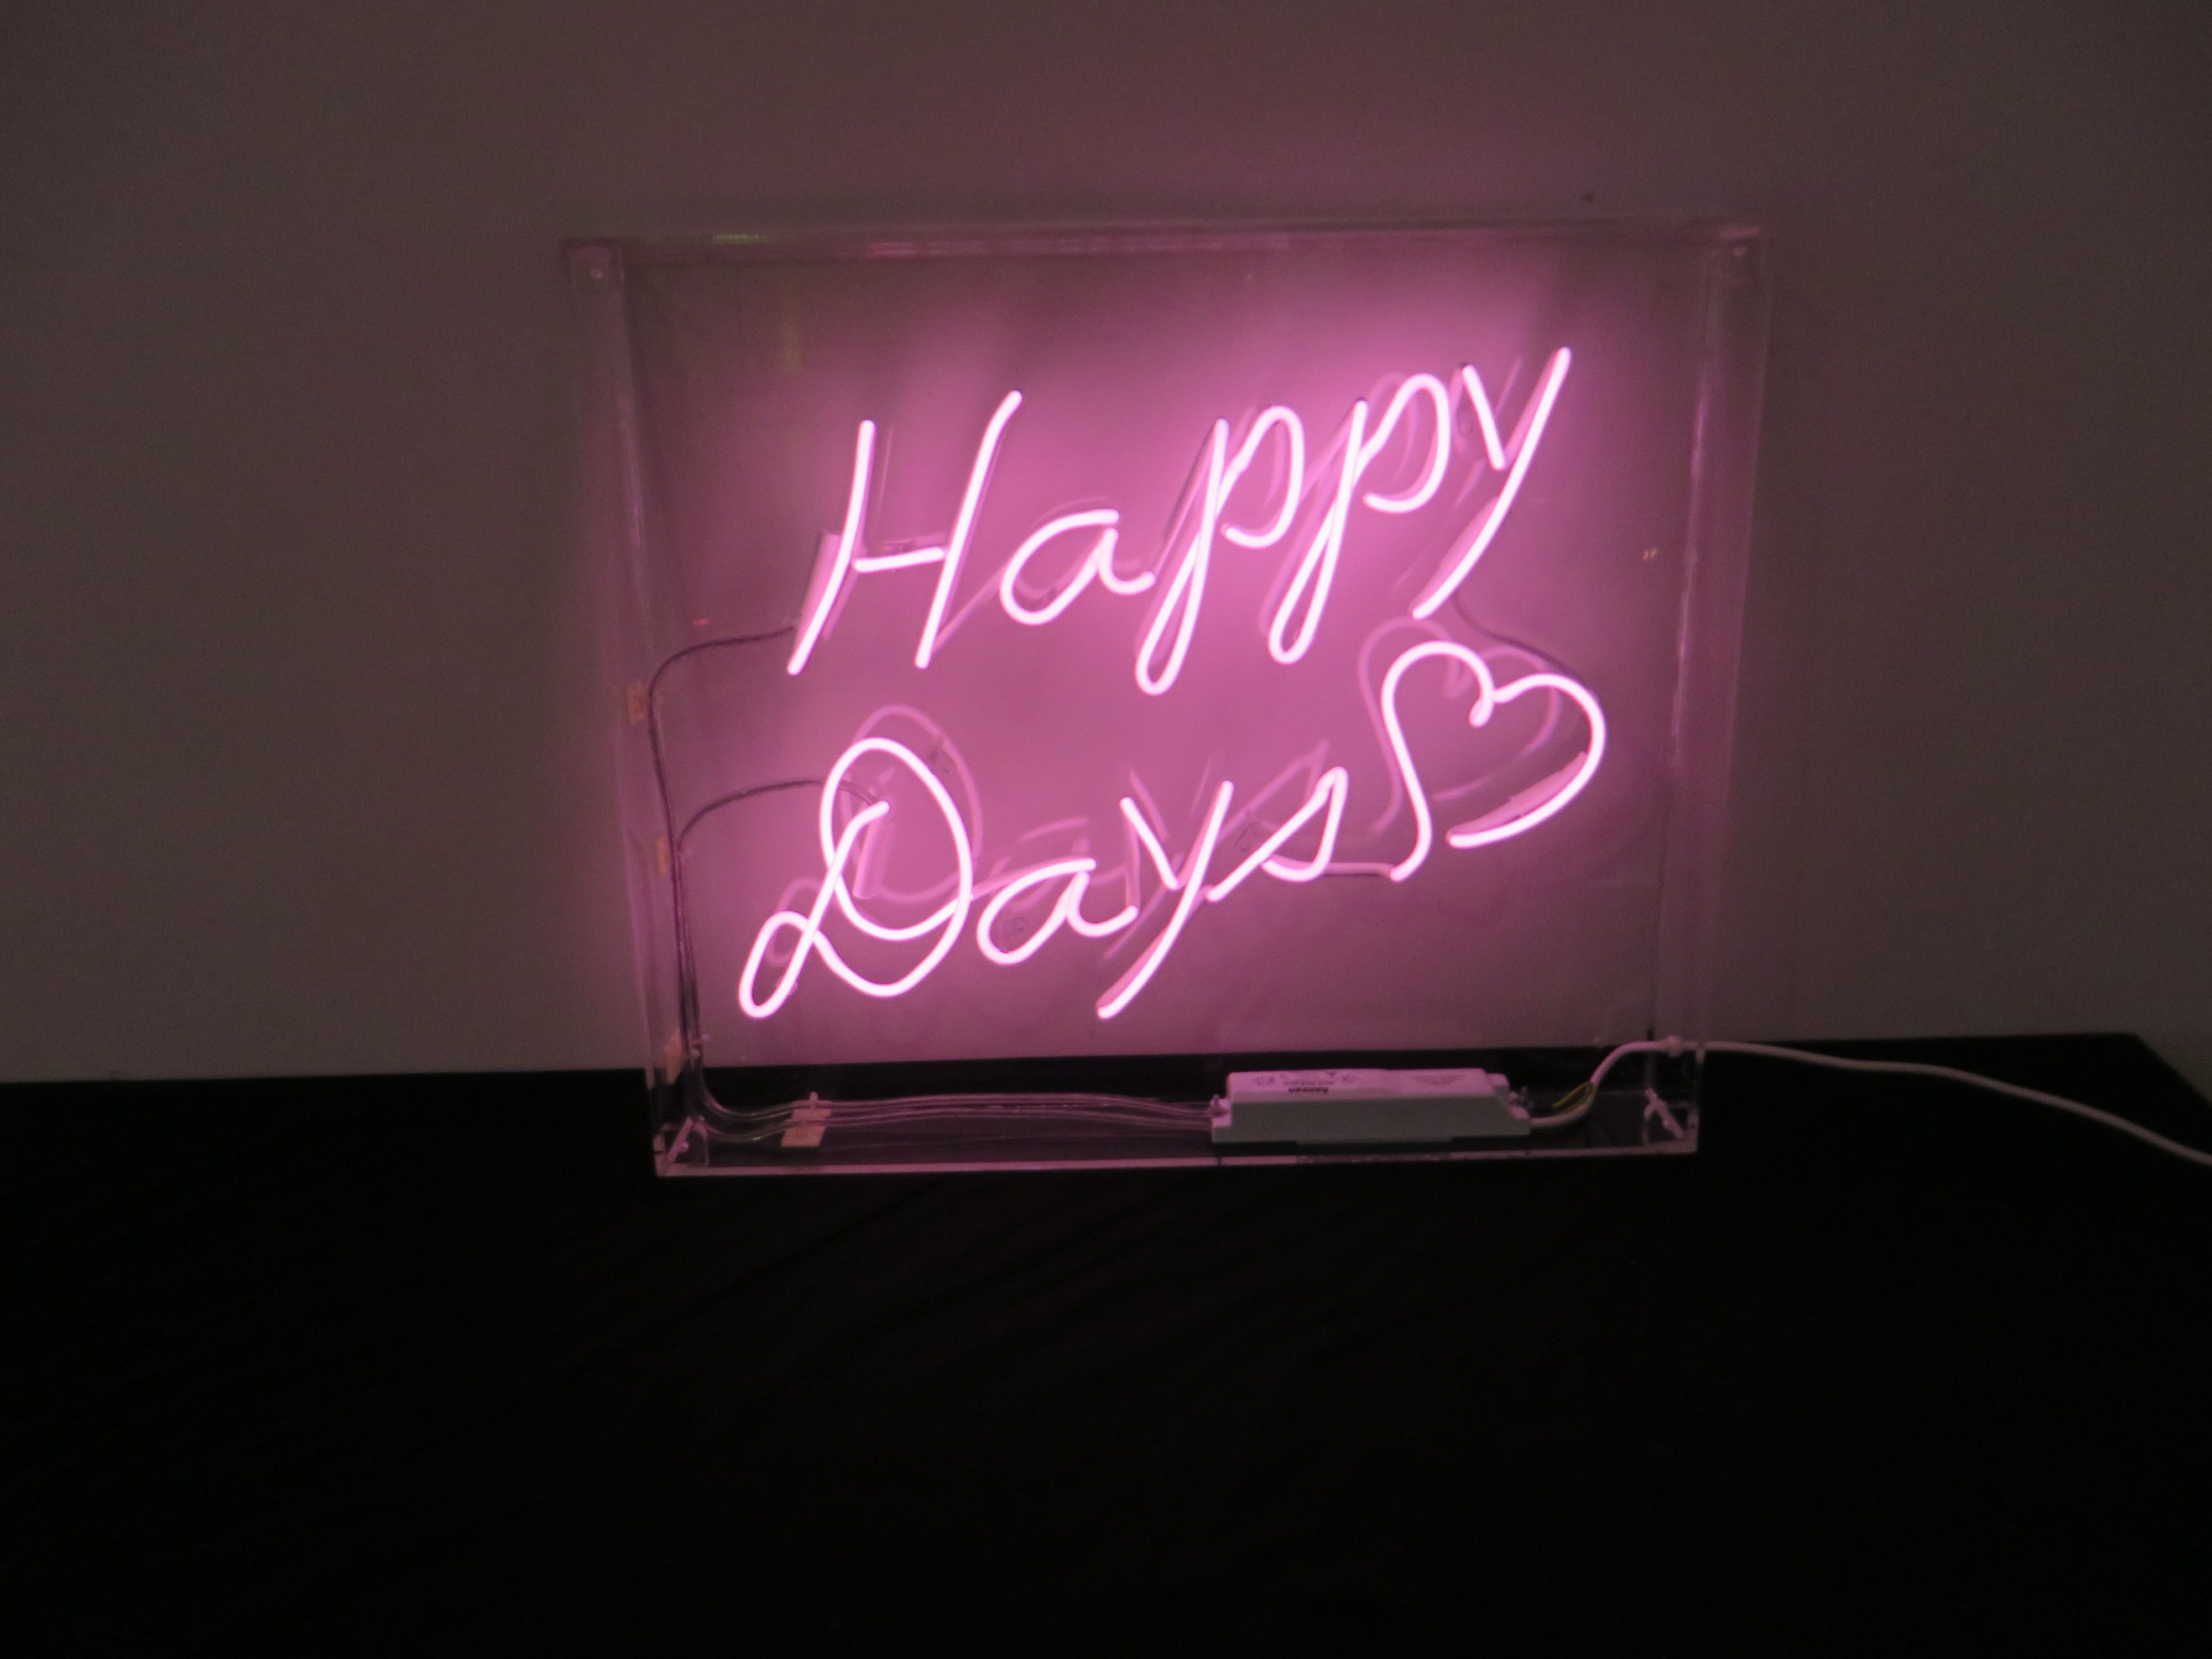 Happy Days Pink Neon Light Www Neoncreations Co Uk Neon Signs